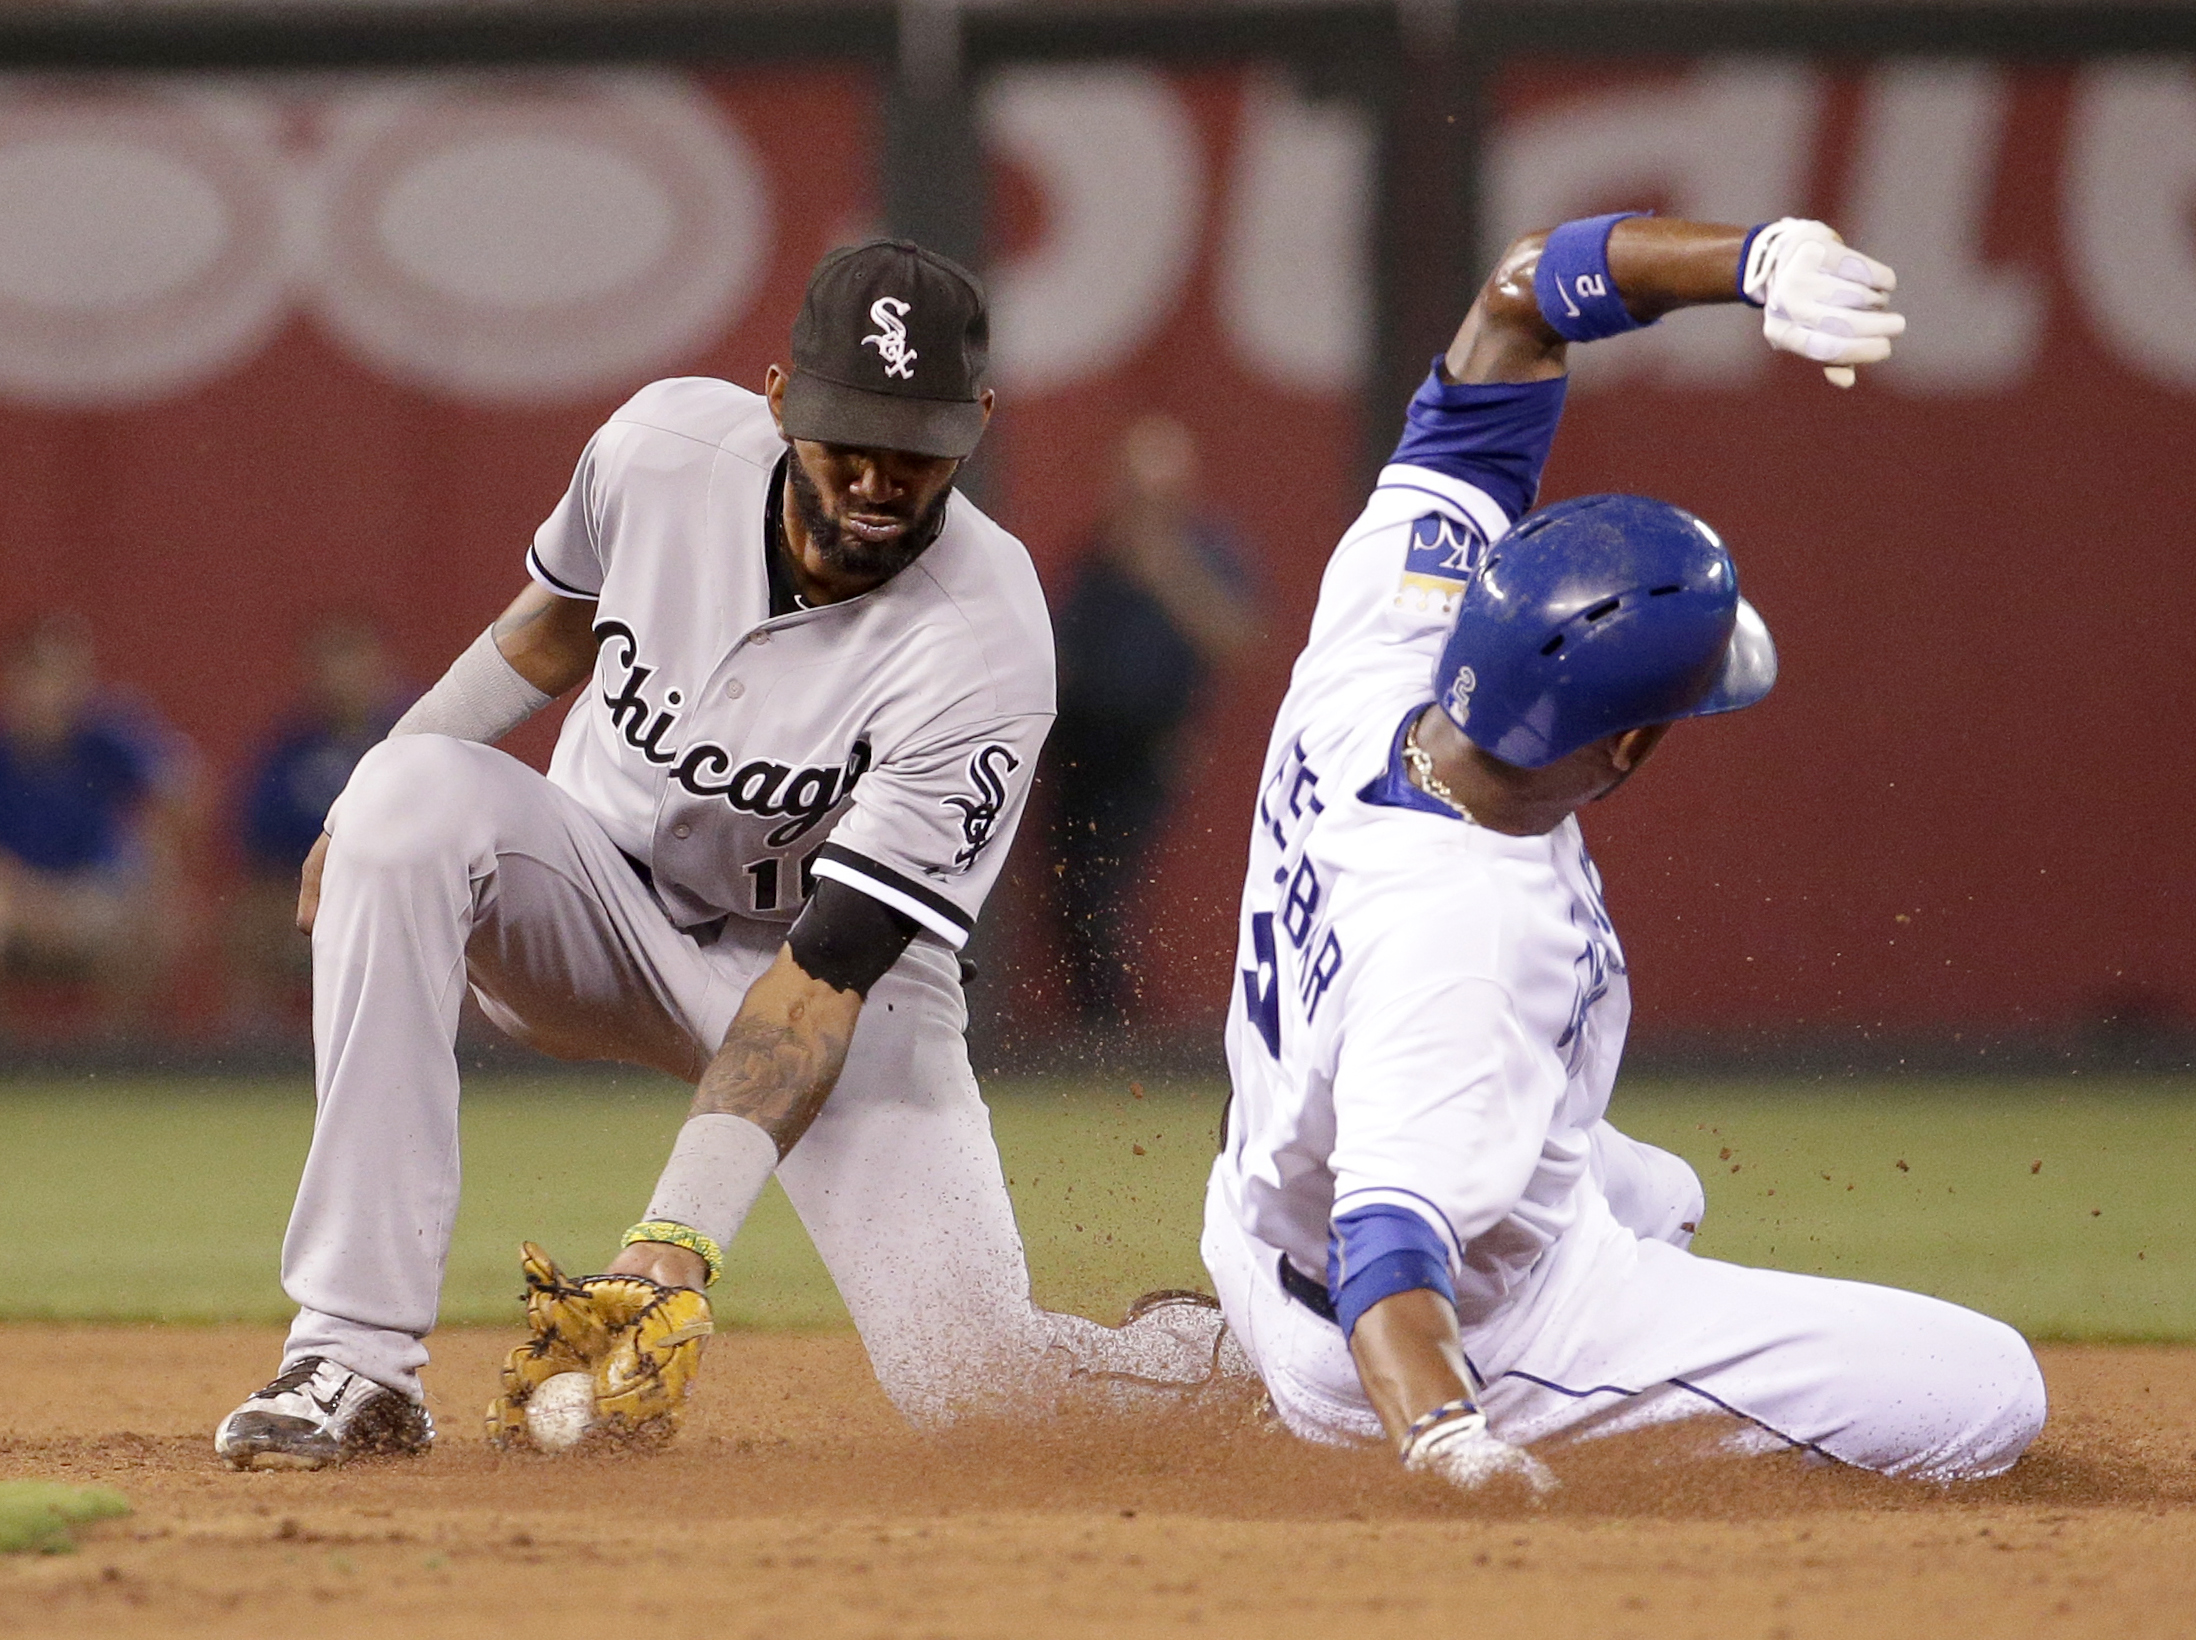 Kansas City Royals' Alcides Escobar, right, beats the tag by Chicago White Sox shortstop Alexei Ramirez, left, to steal second during the seventh inning of a baseball game Friday, Aug. 7, 2015, in Kansas City, Mo. (AP Photo/Charlie Riedel)